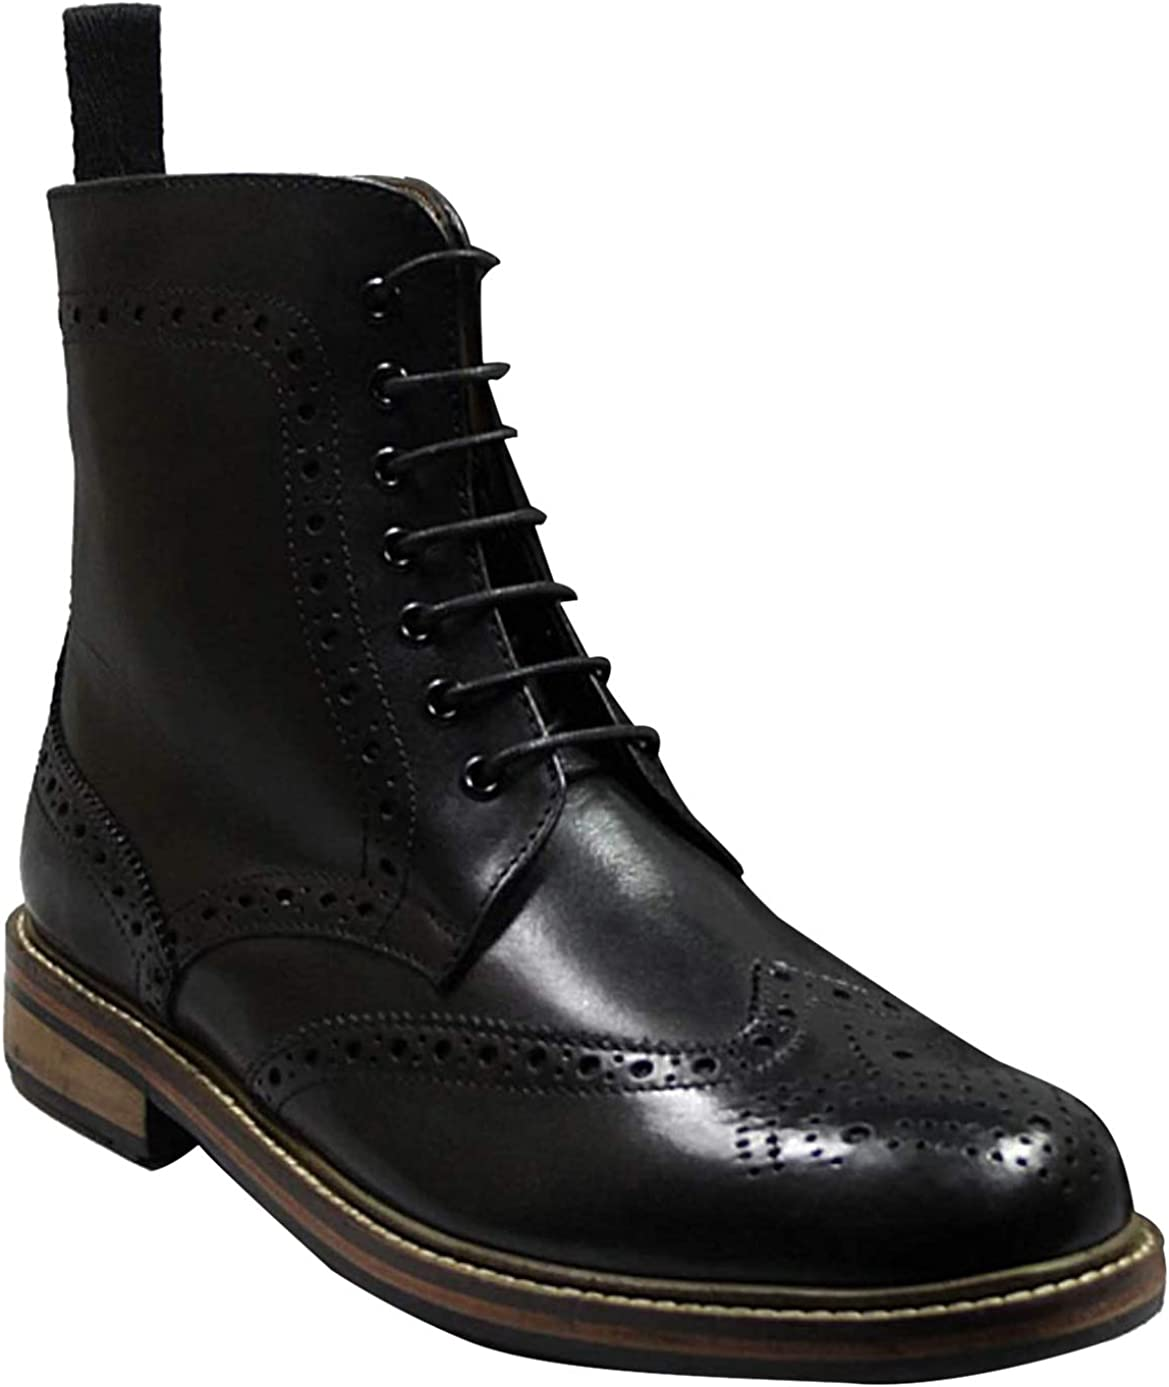 mens black lace up ankle boots